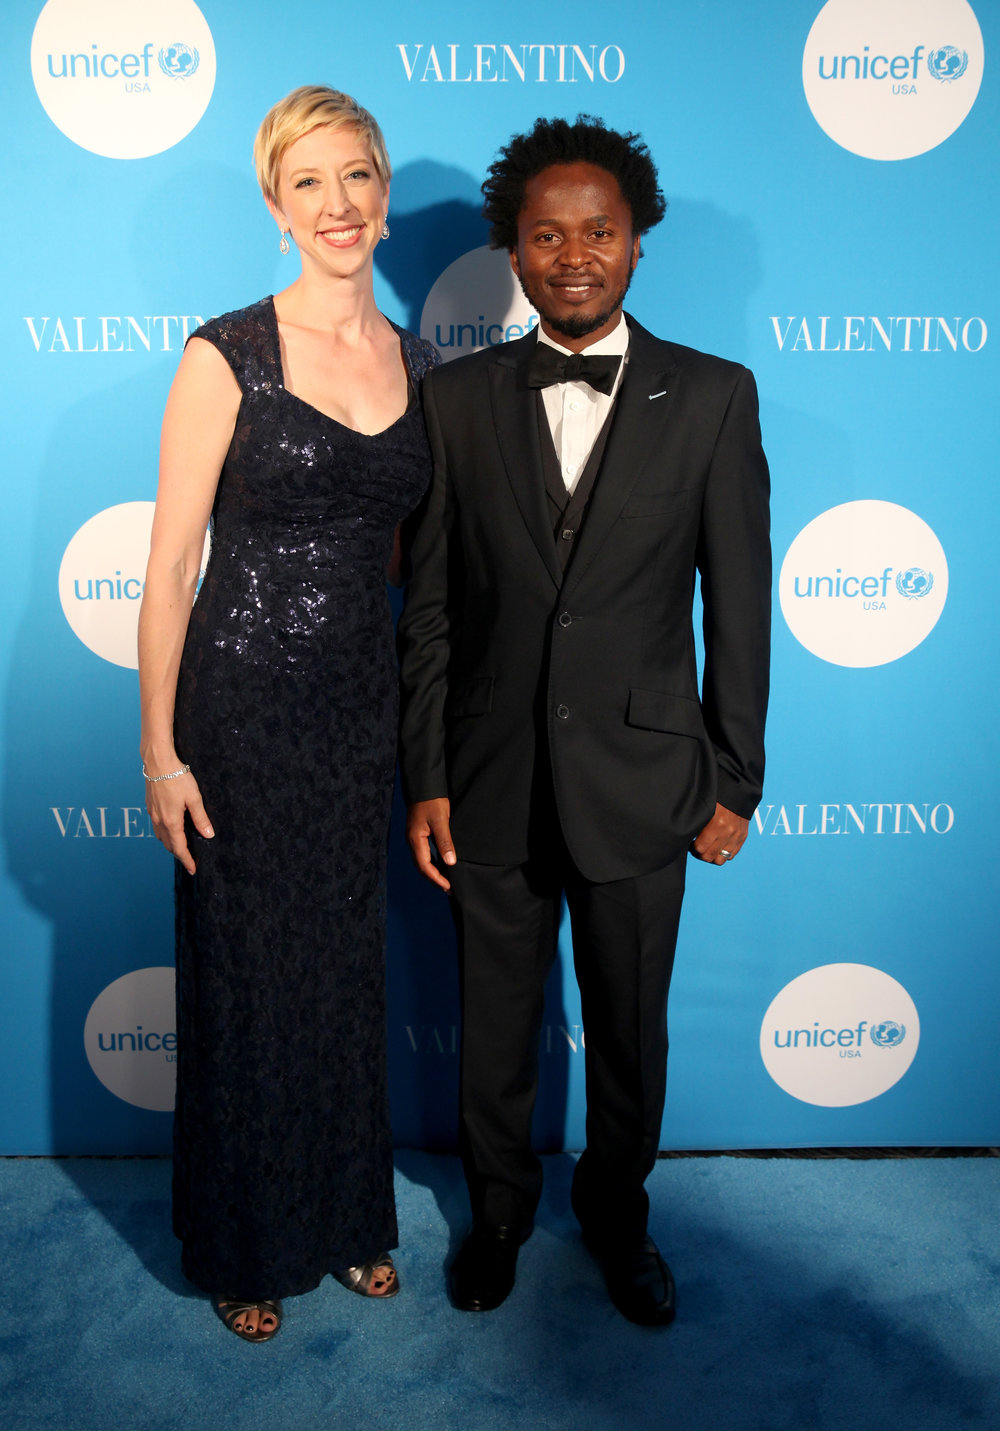 Northwest Regional Managing Director Emily Brouwer with UNICEF Goodwill Ambassador Ishmael Beah (Photo by Getty Images)